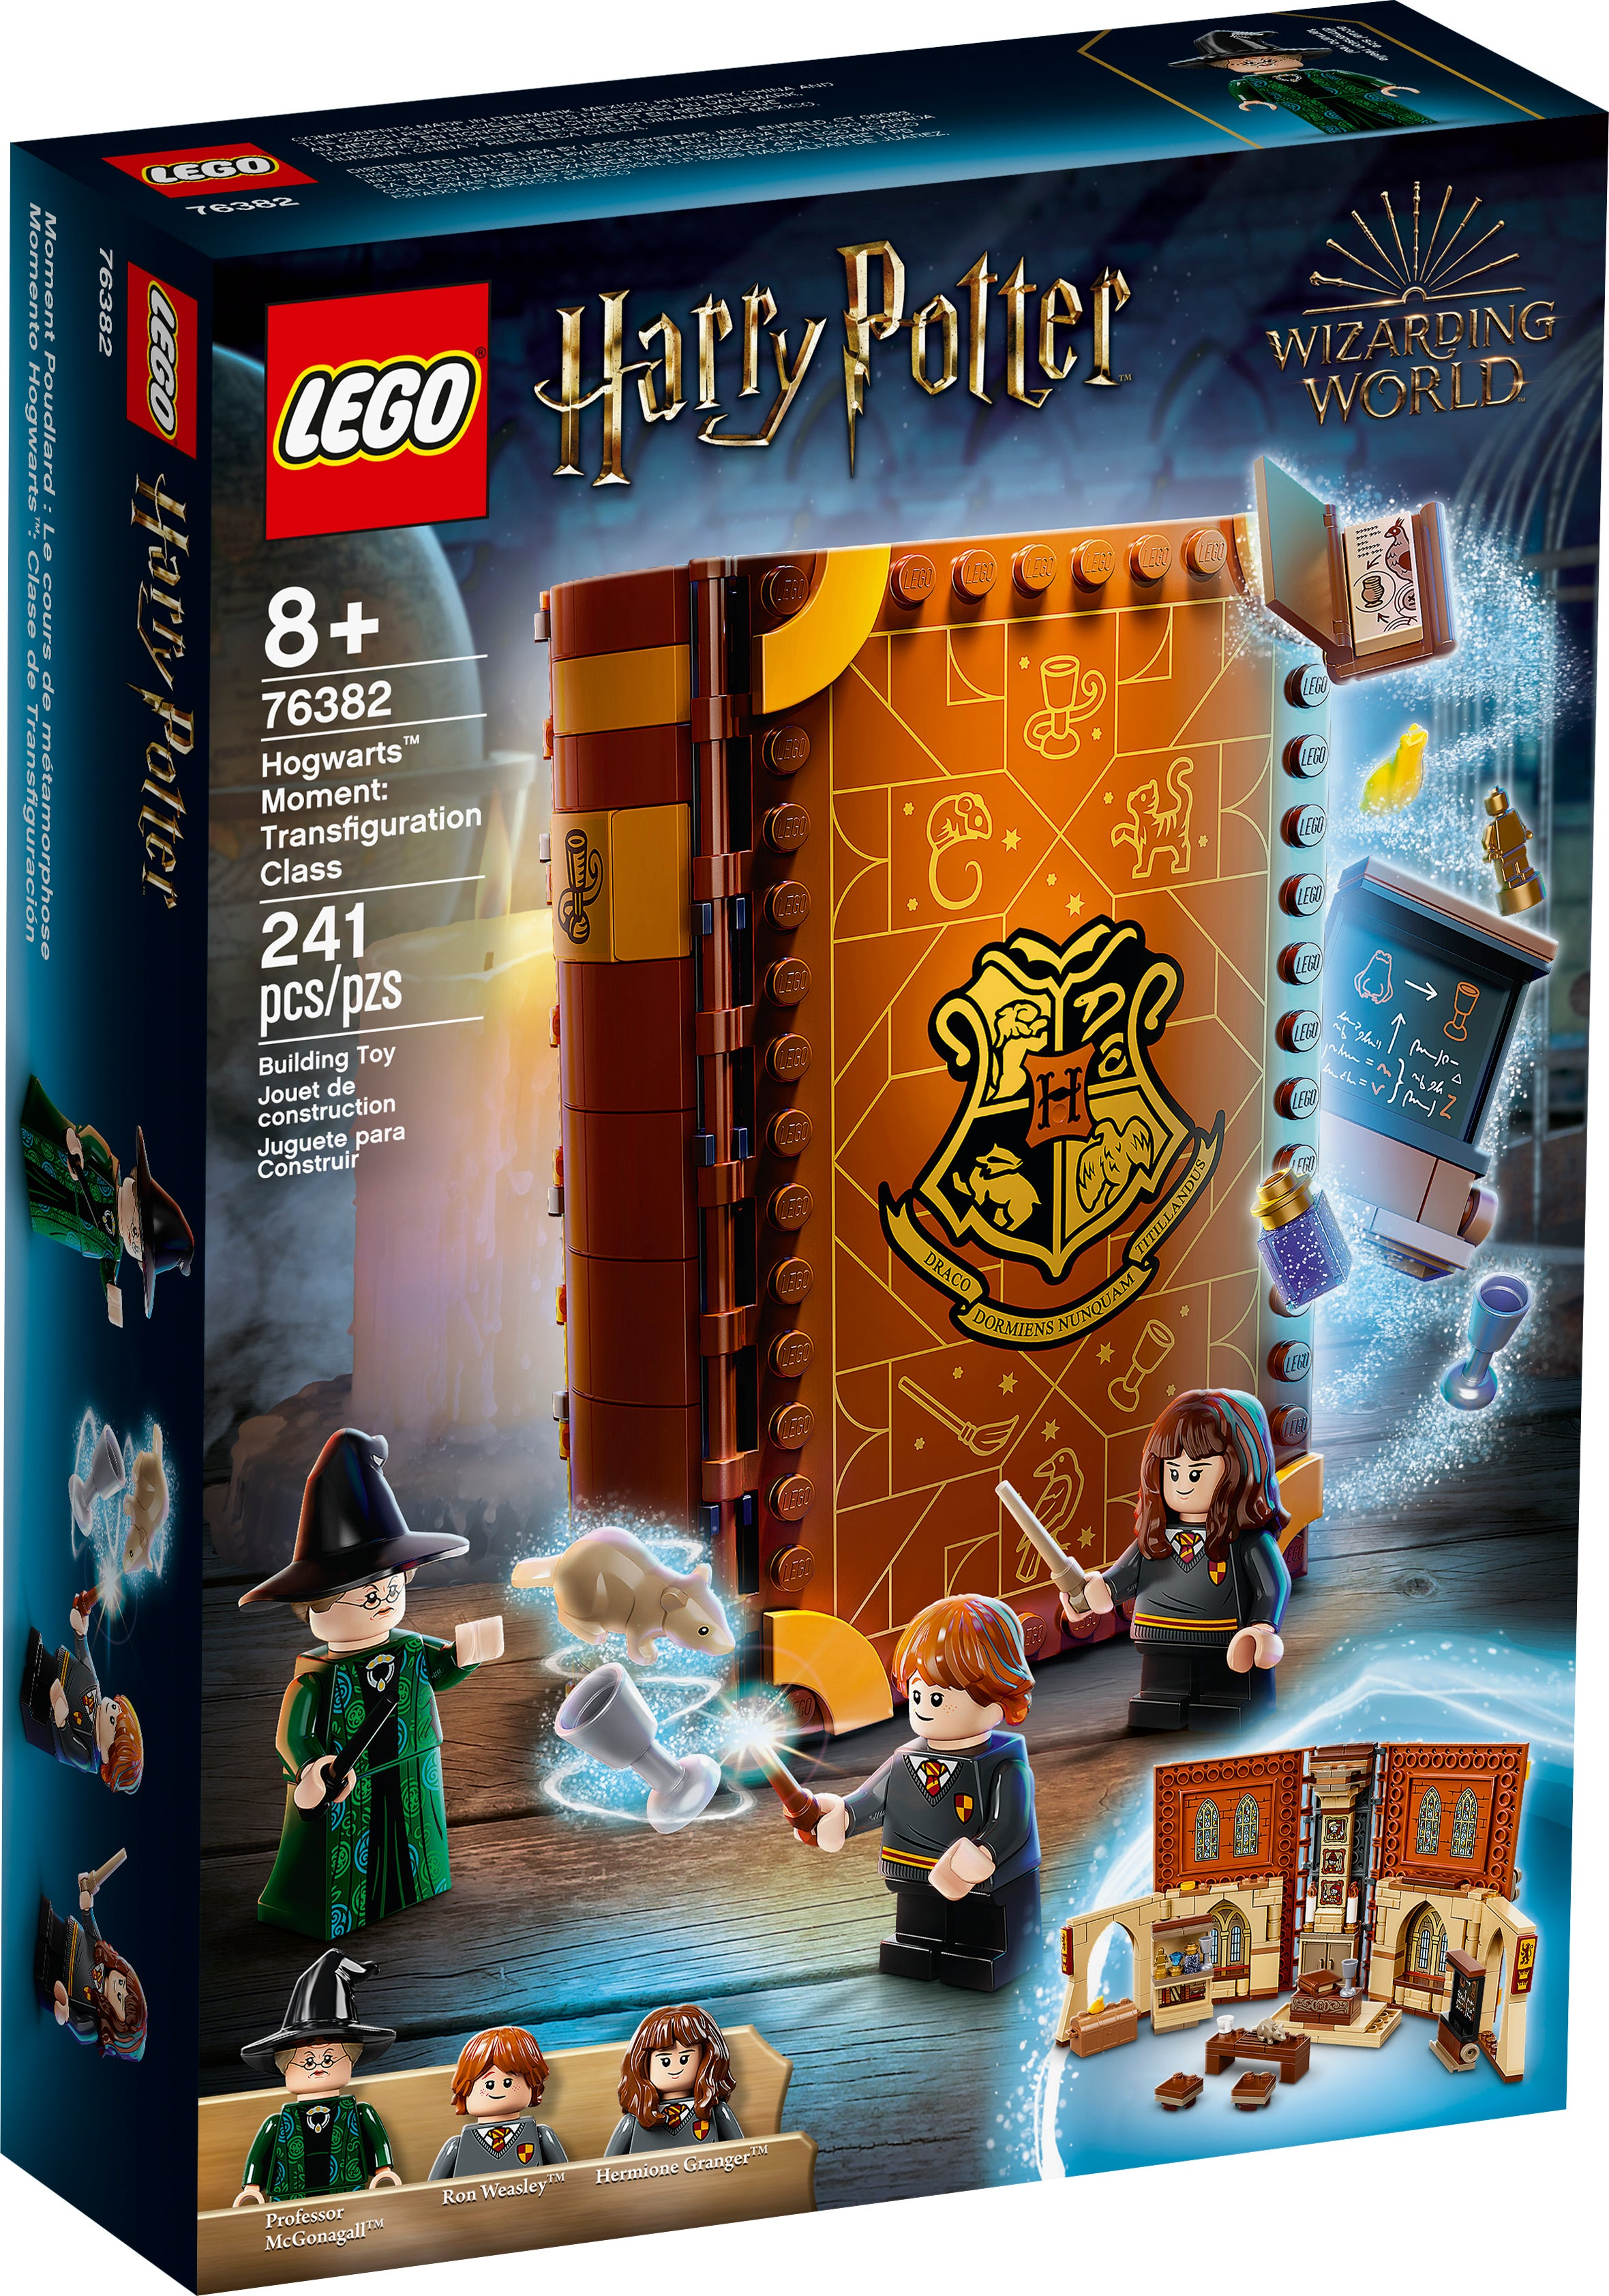 Lighting Kit Compatible with Lego 76382 Professor McGonagall Room T-Club Classic LED Light Kit for Lego Harry Potter Hogwarts Moment 76382 Not Include Lego Set 76382